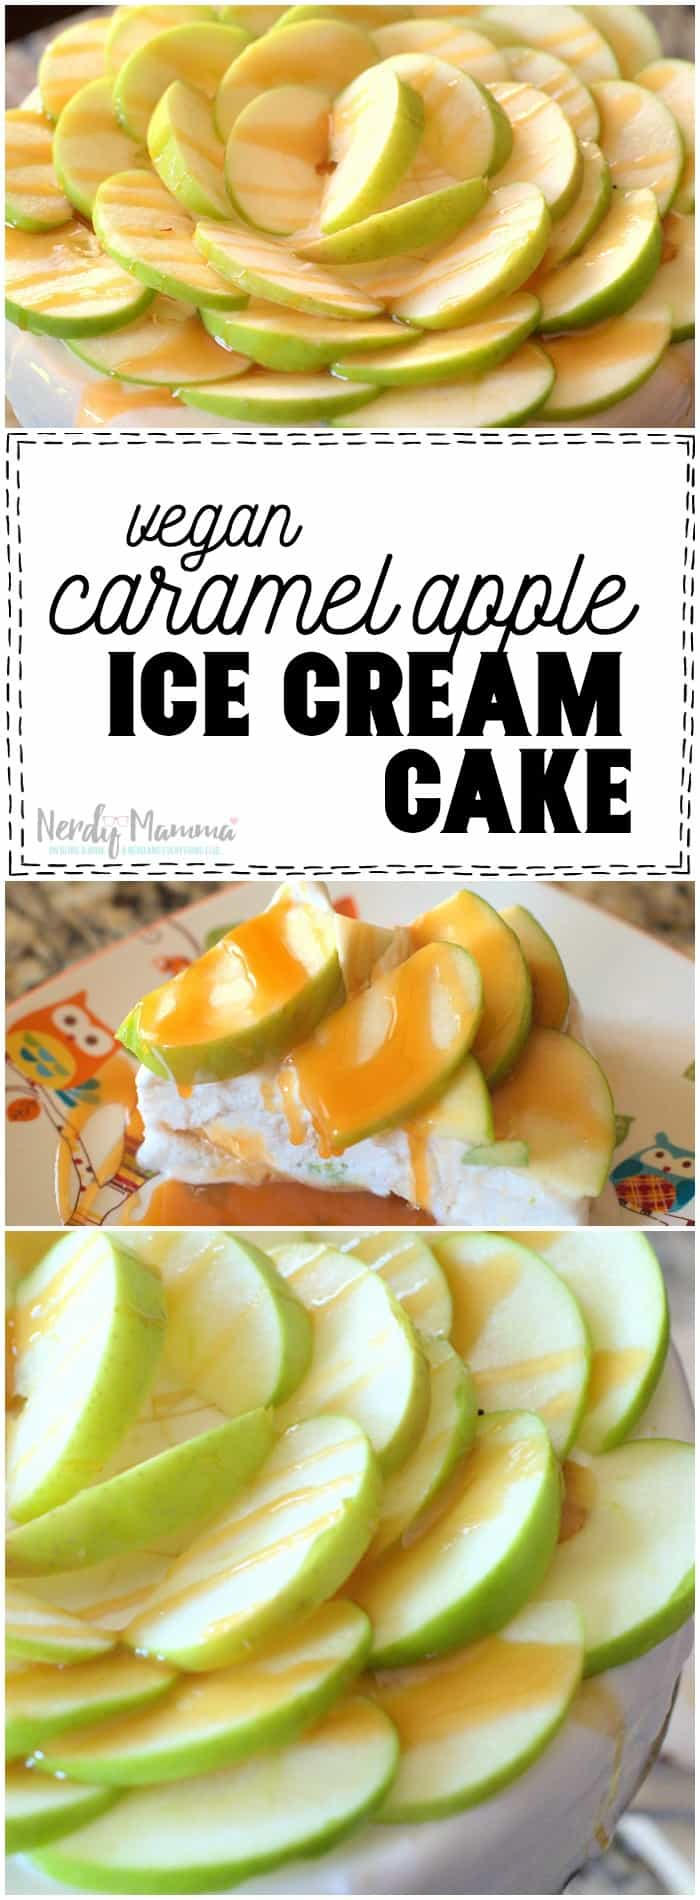 OMG! I am IN LOVE with this Vegan and Gluten-Free Caramel Apple Ice Cream Cake recipe. I can't wait to make it now.